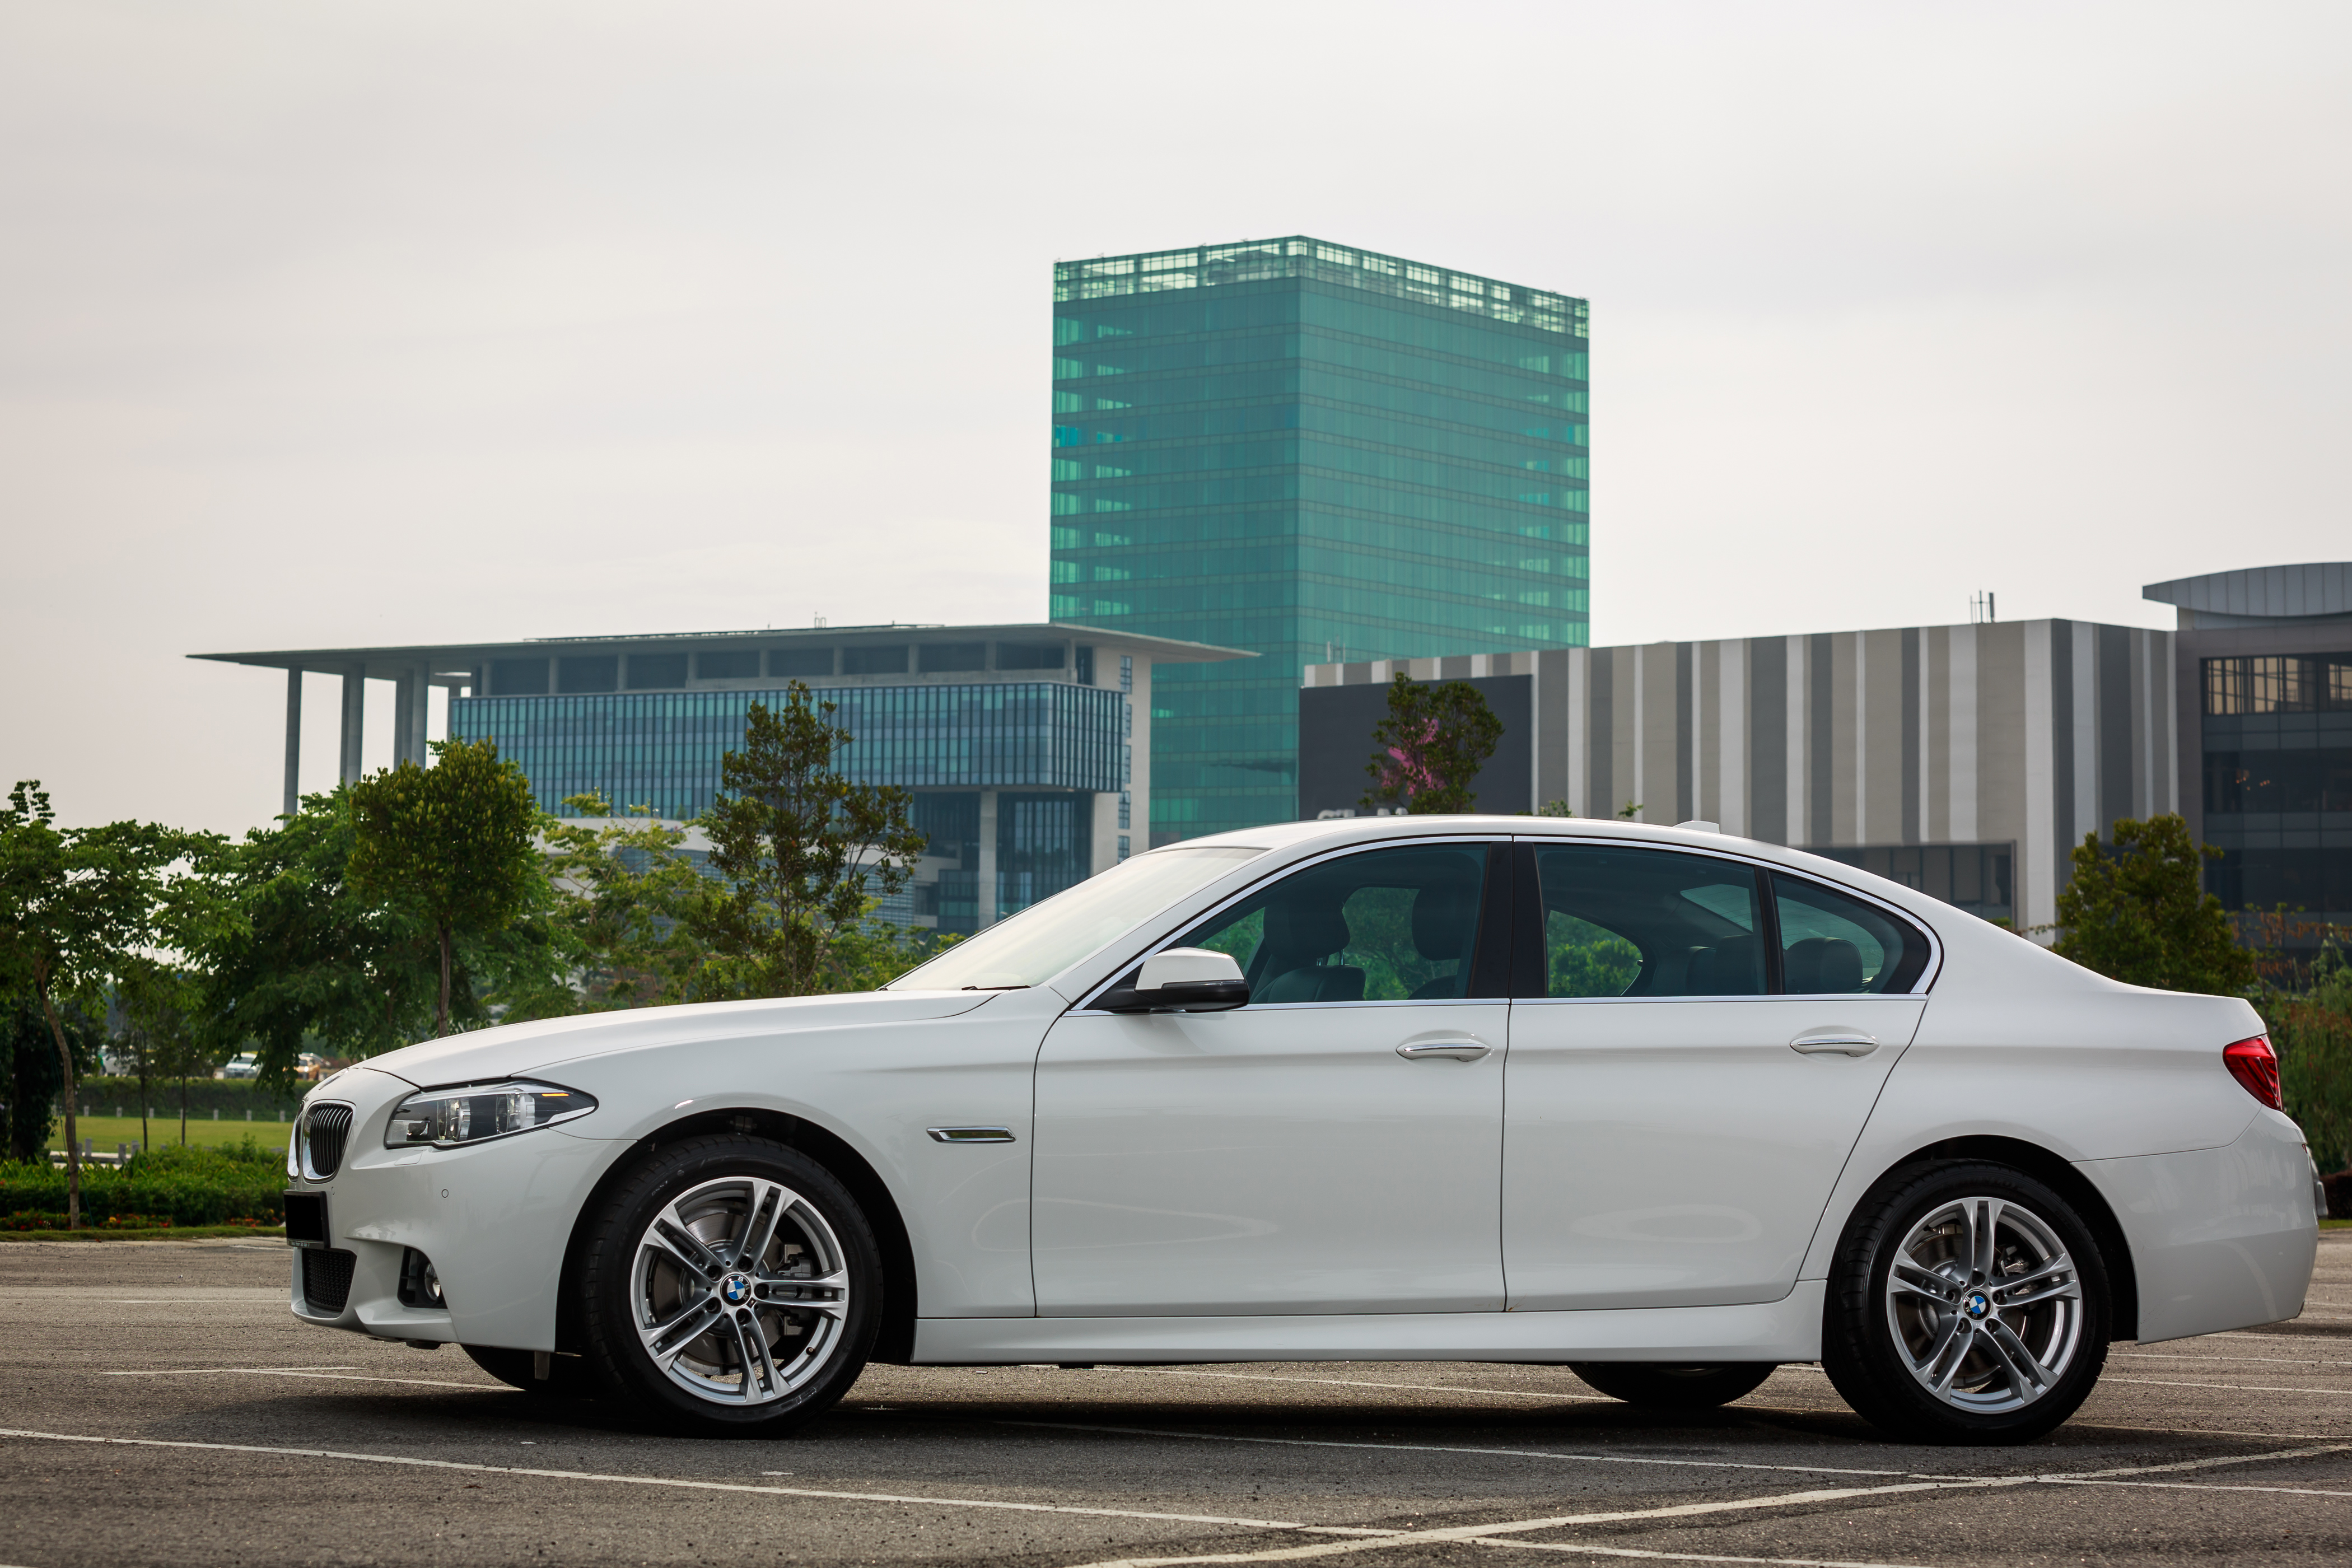 Bmw 520d Sport Introduced In Malaysia 50 Units Image 316427